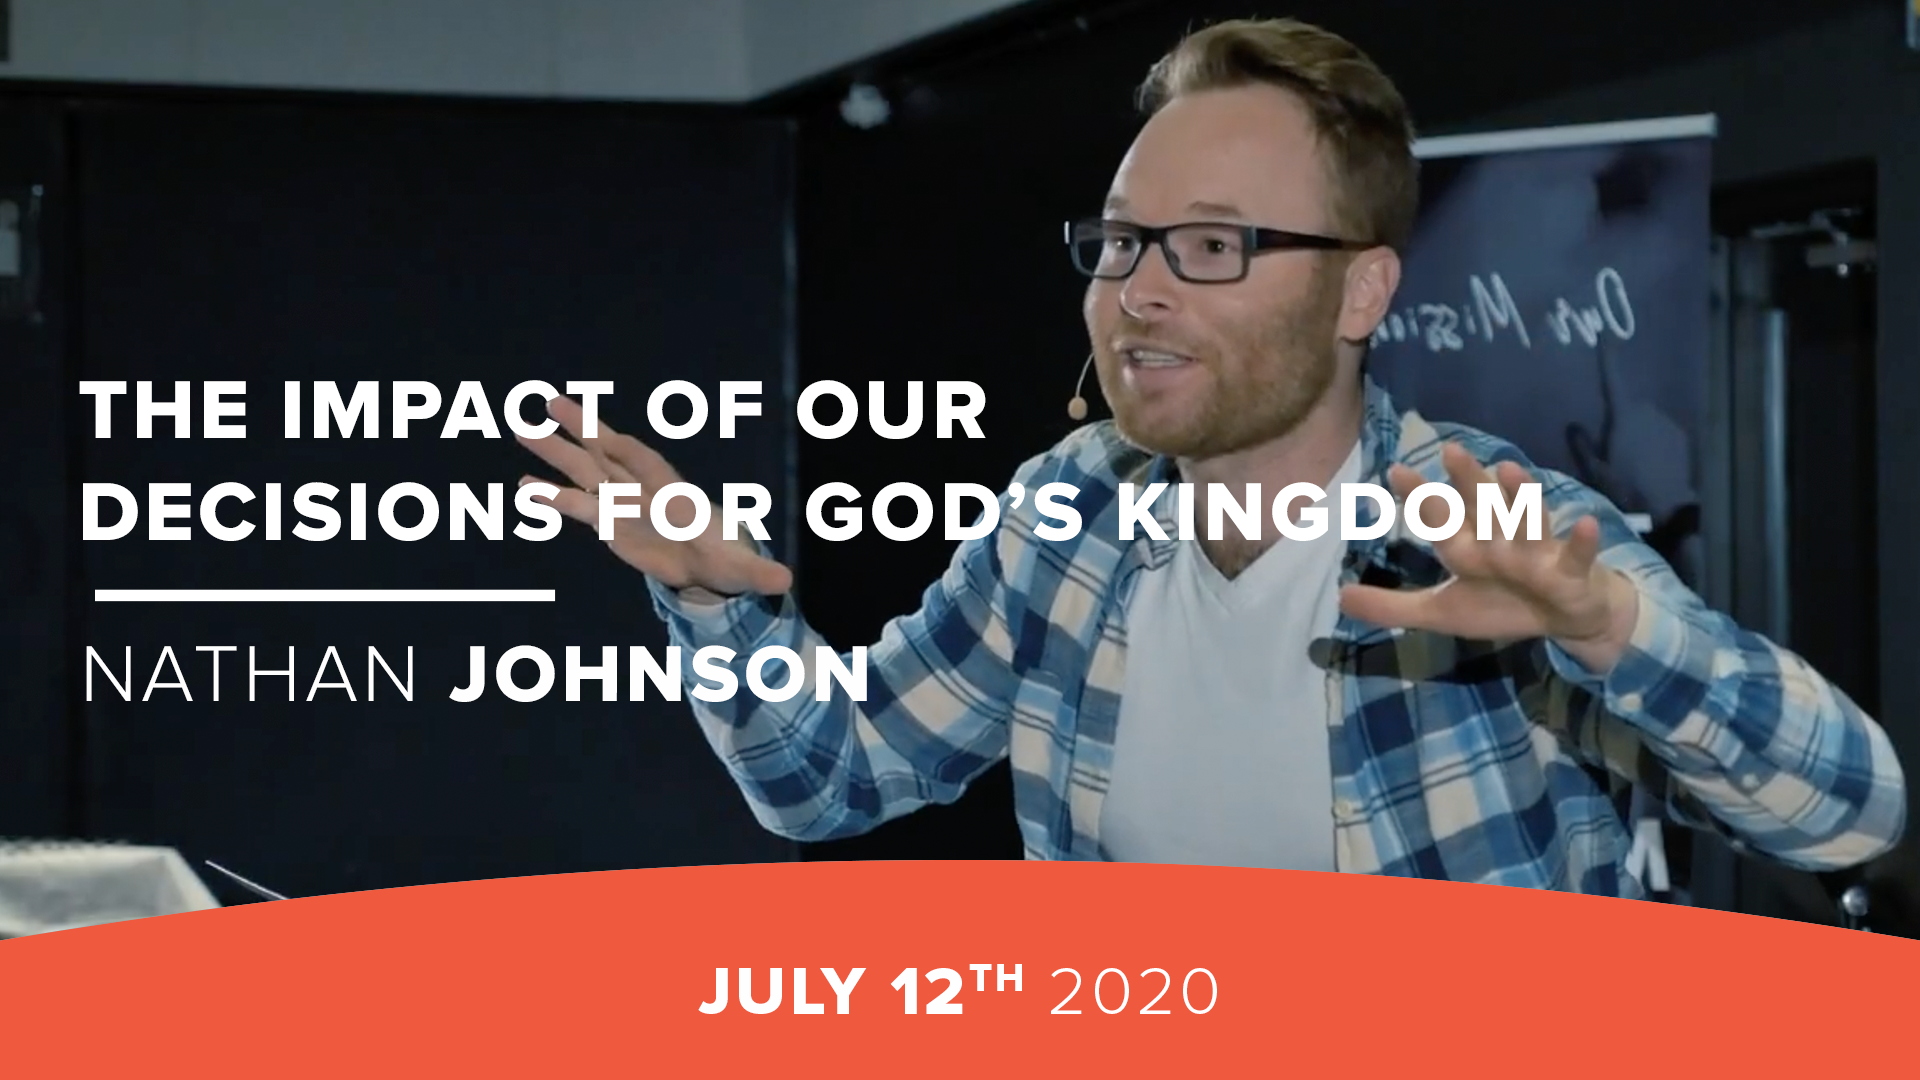 The Impact of our Decisions for God's Kingdom